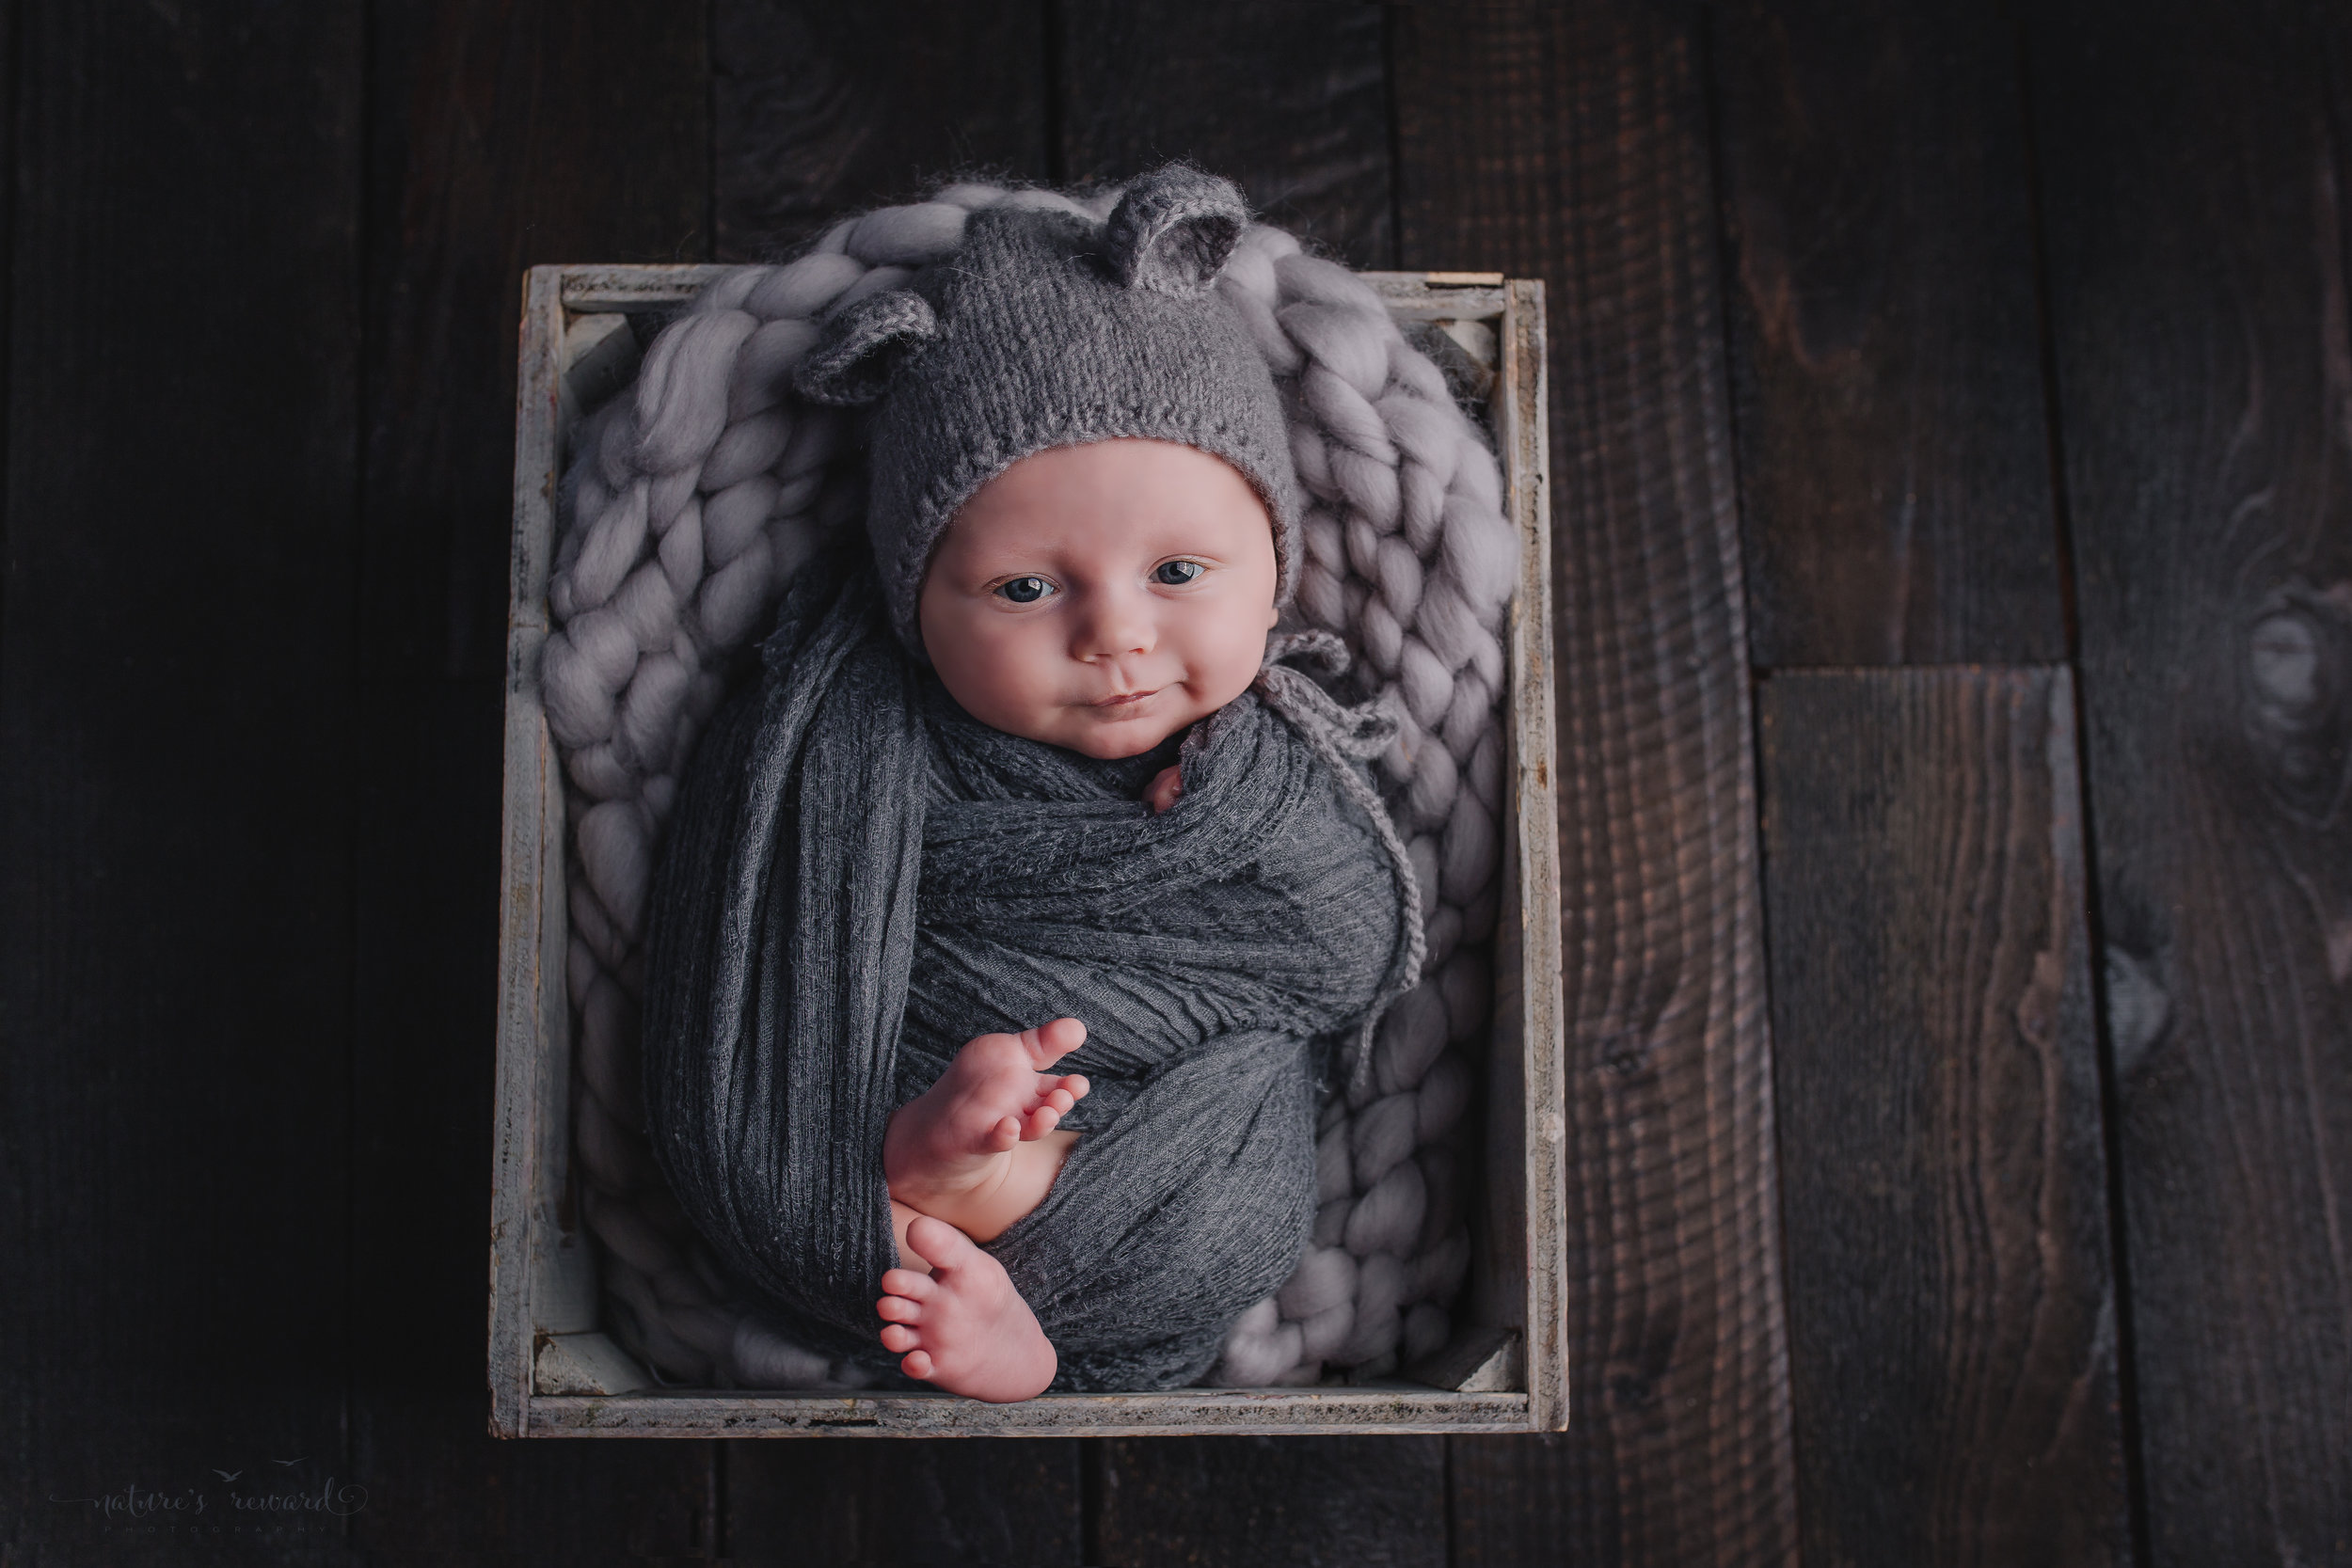 Two month old baby boy newborn baby boy session in a box on a wood floor wearing a teddy hat wrapped in grey- a portrait by Nature's Reward Photography